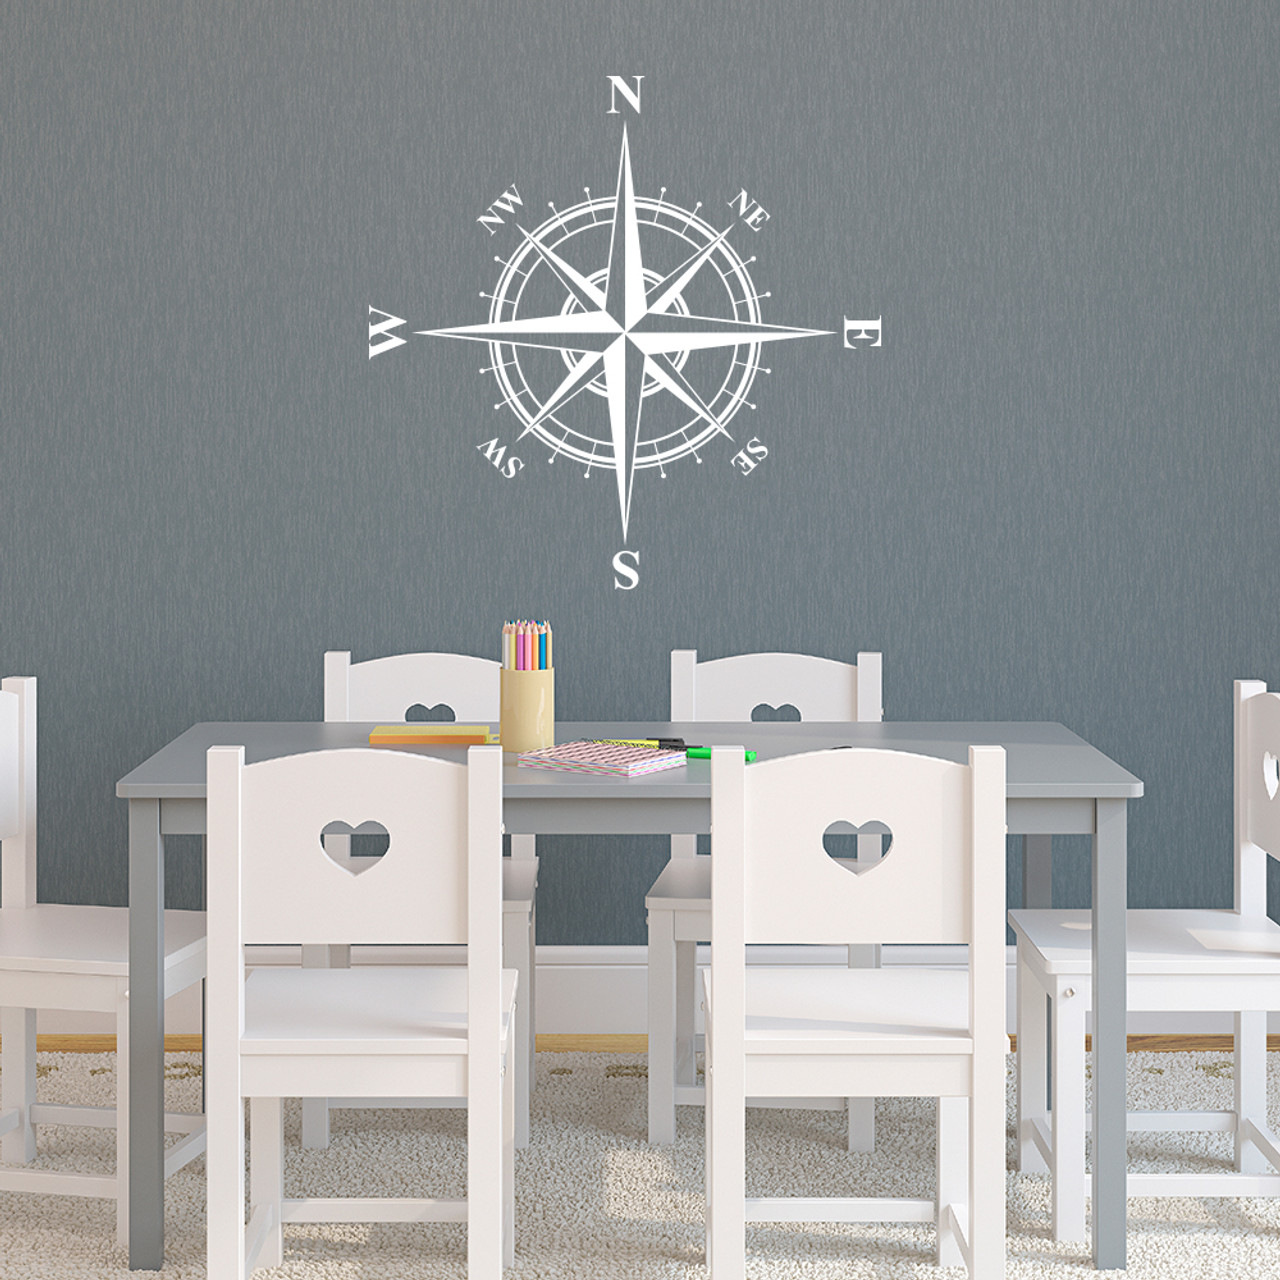 The Charles compass wall decal shown here in white vinyl.